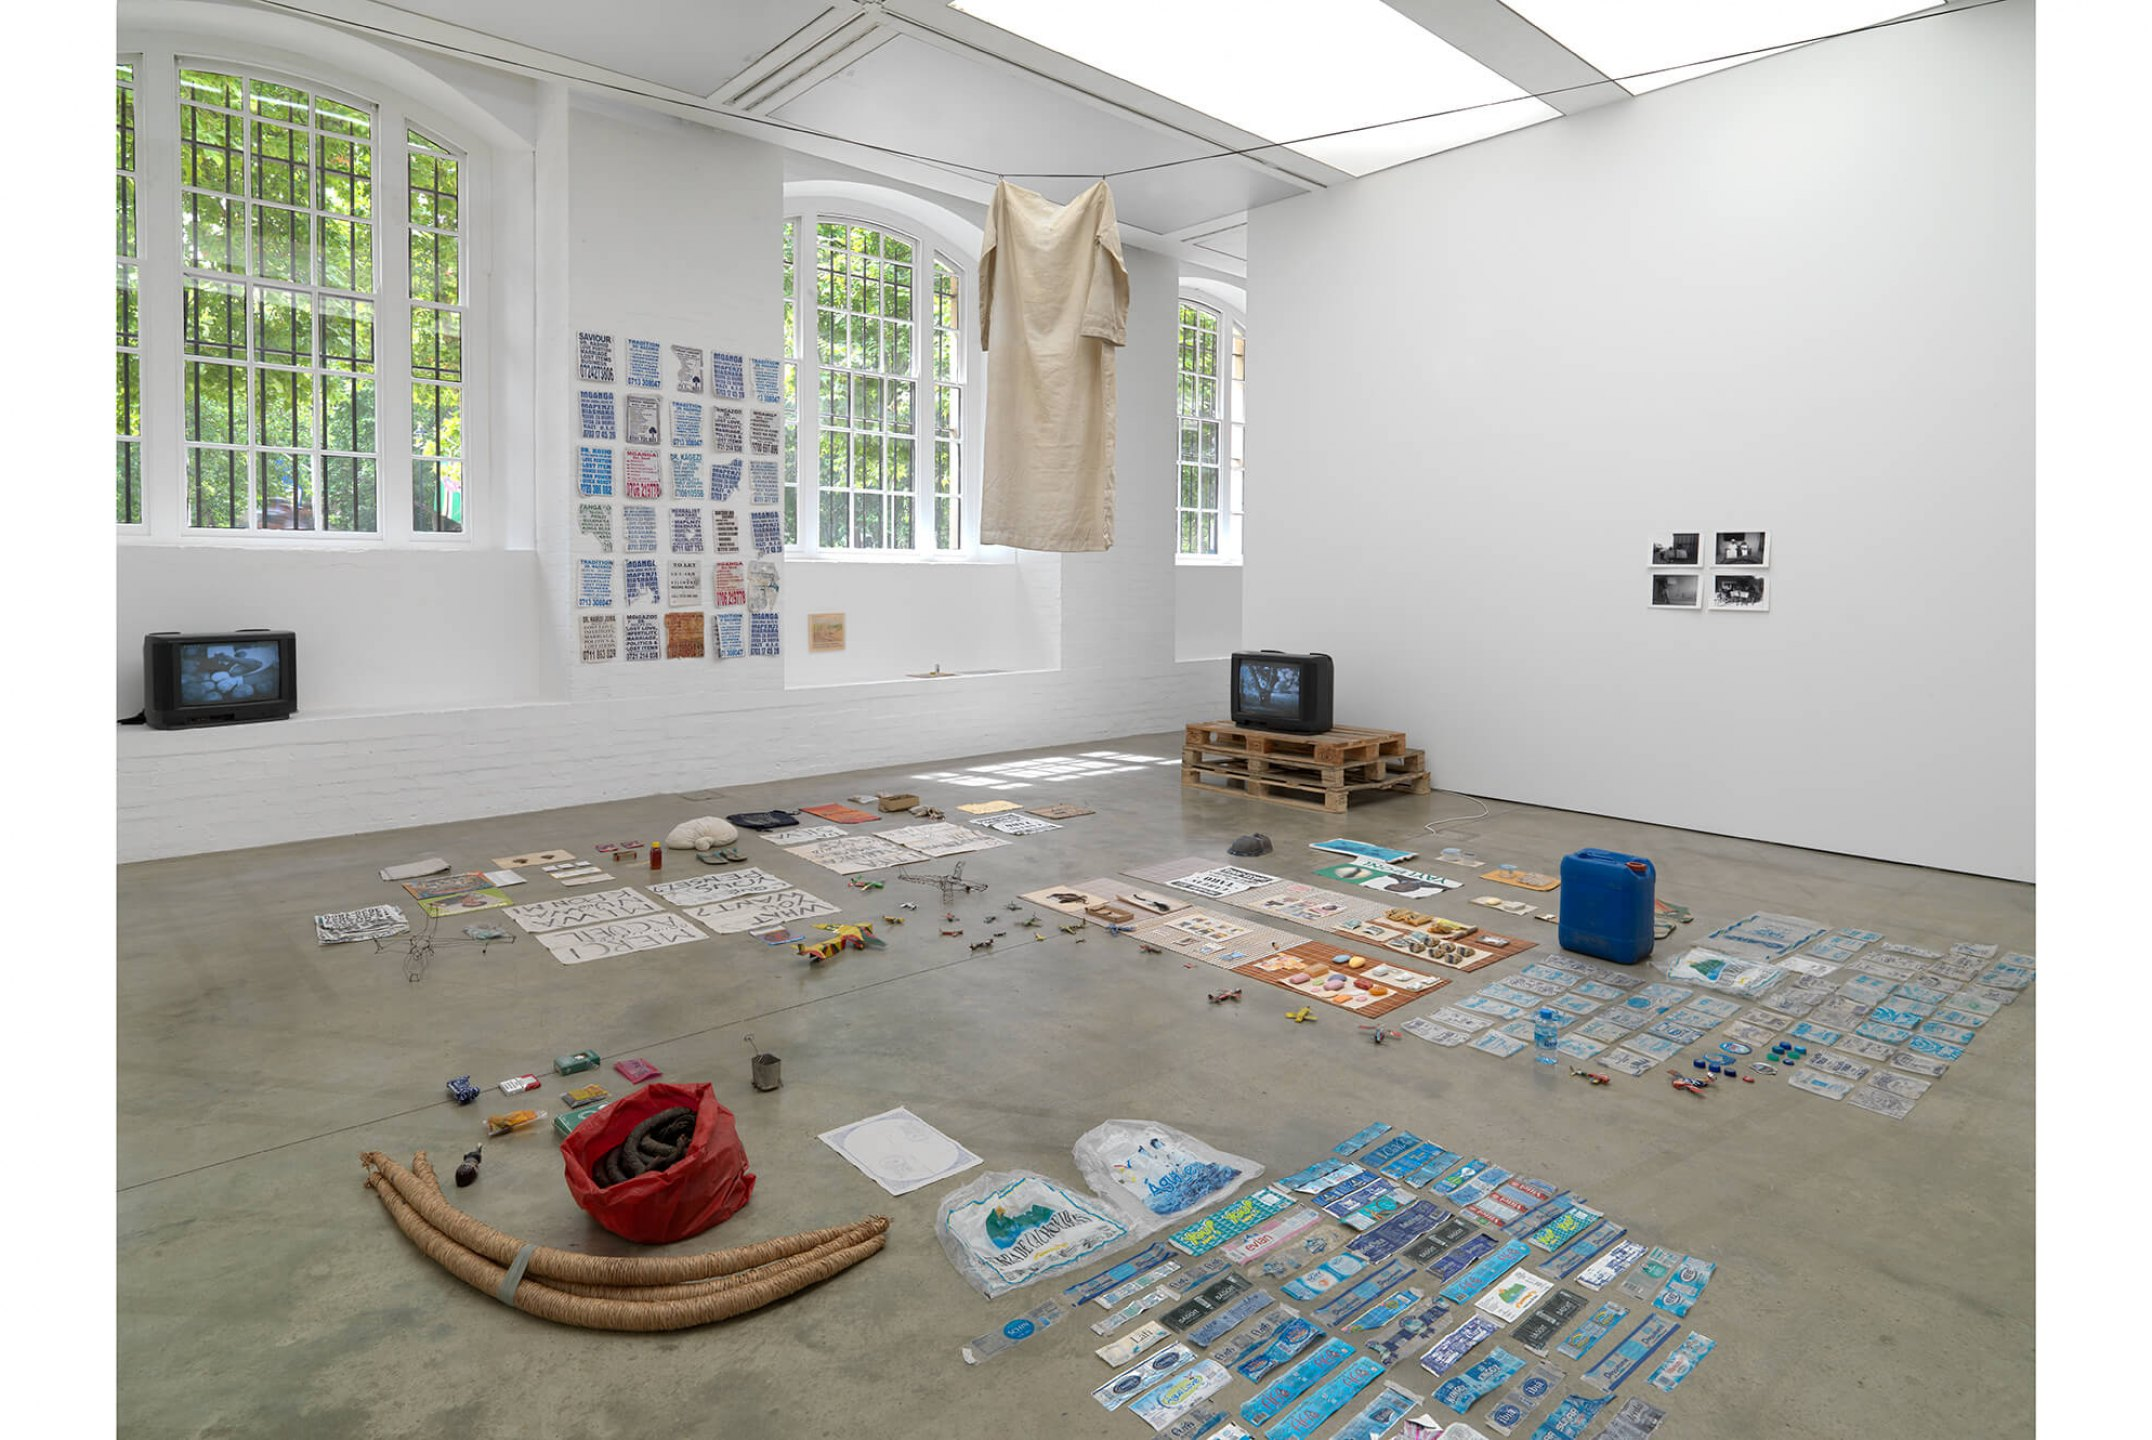 Paulo Nazareth, <em>The Journal,</em> Institute for Contemporary Arts, London, 2014 - Mendes Wood DM